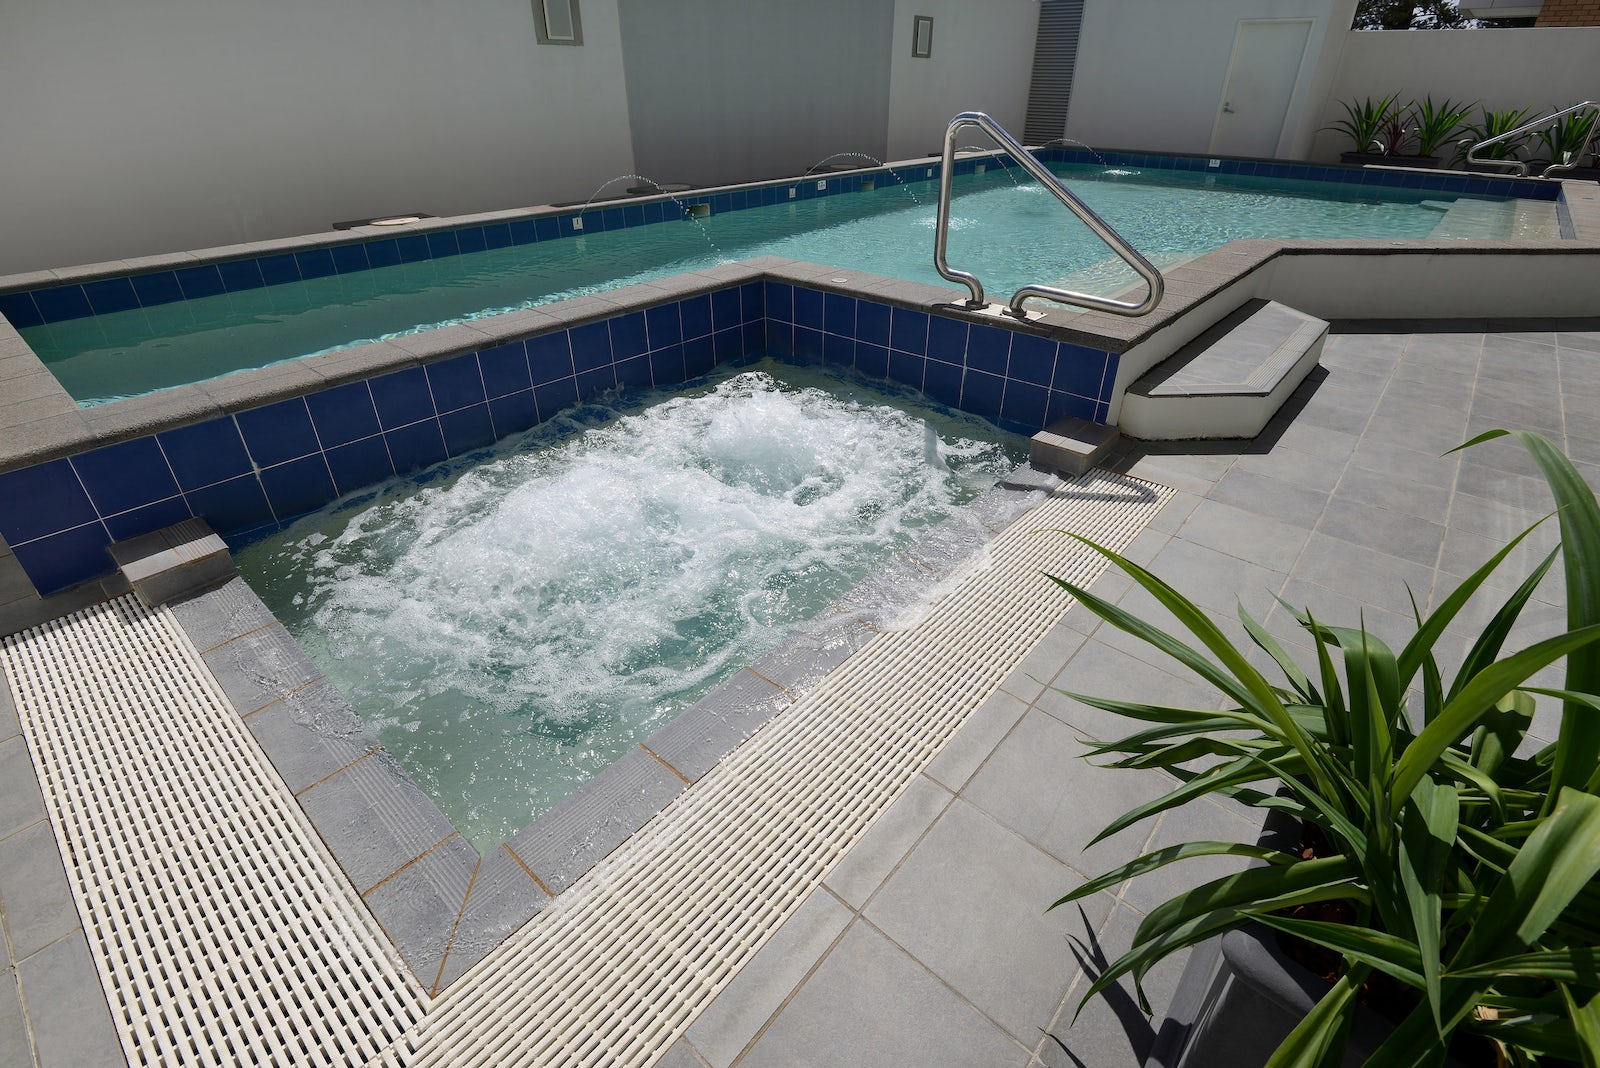 Relax in the pool at Macquarie Waters Boutique hotel